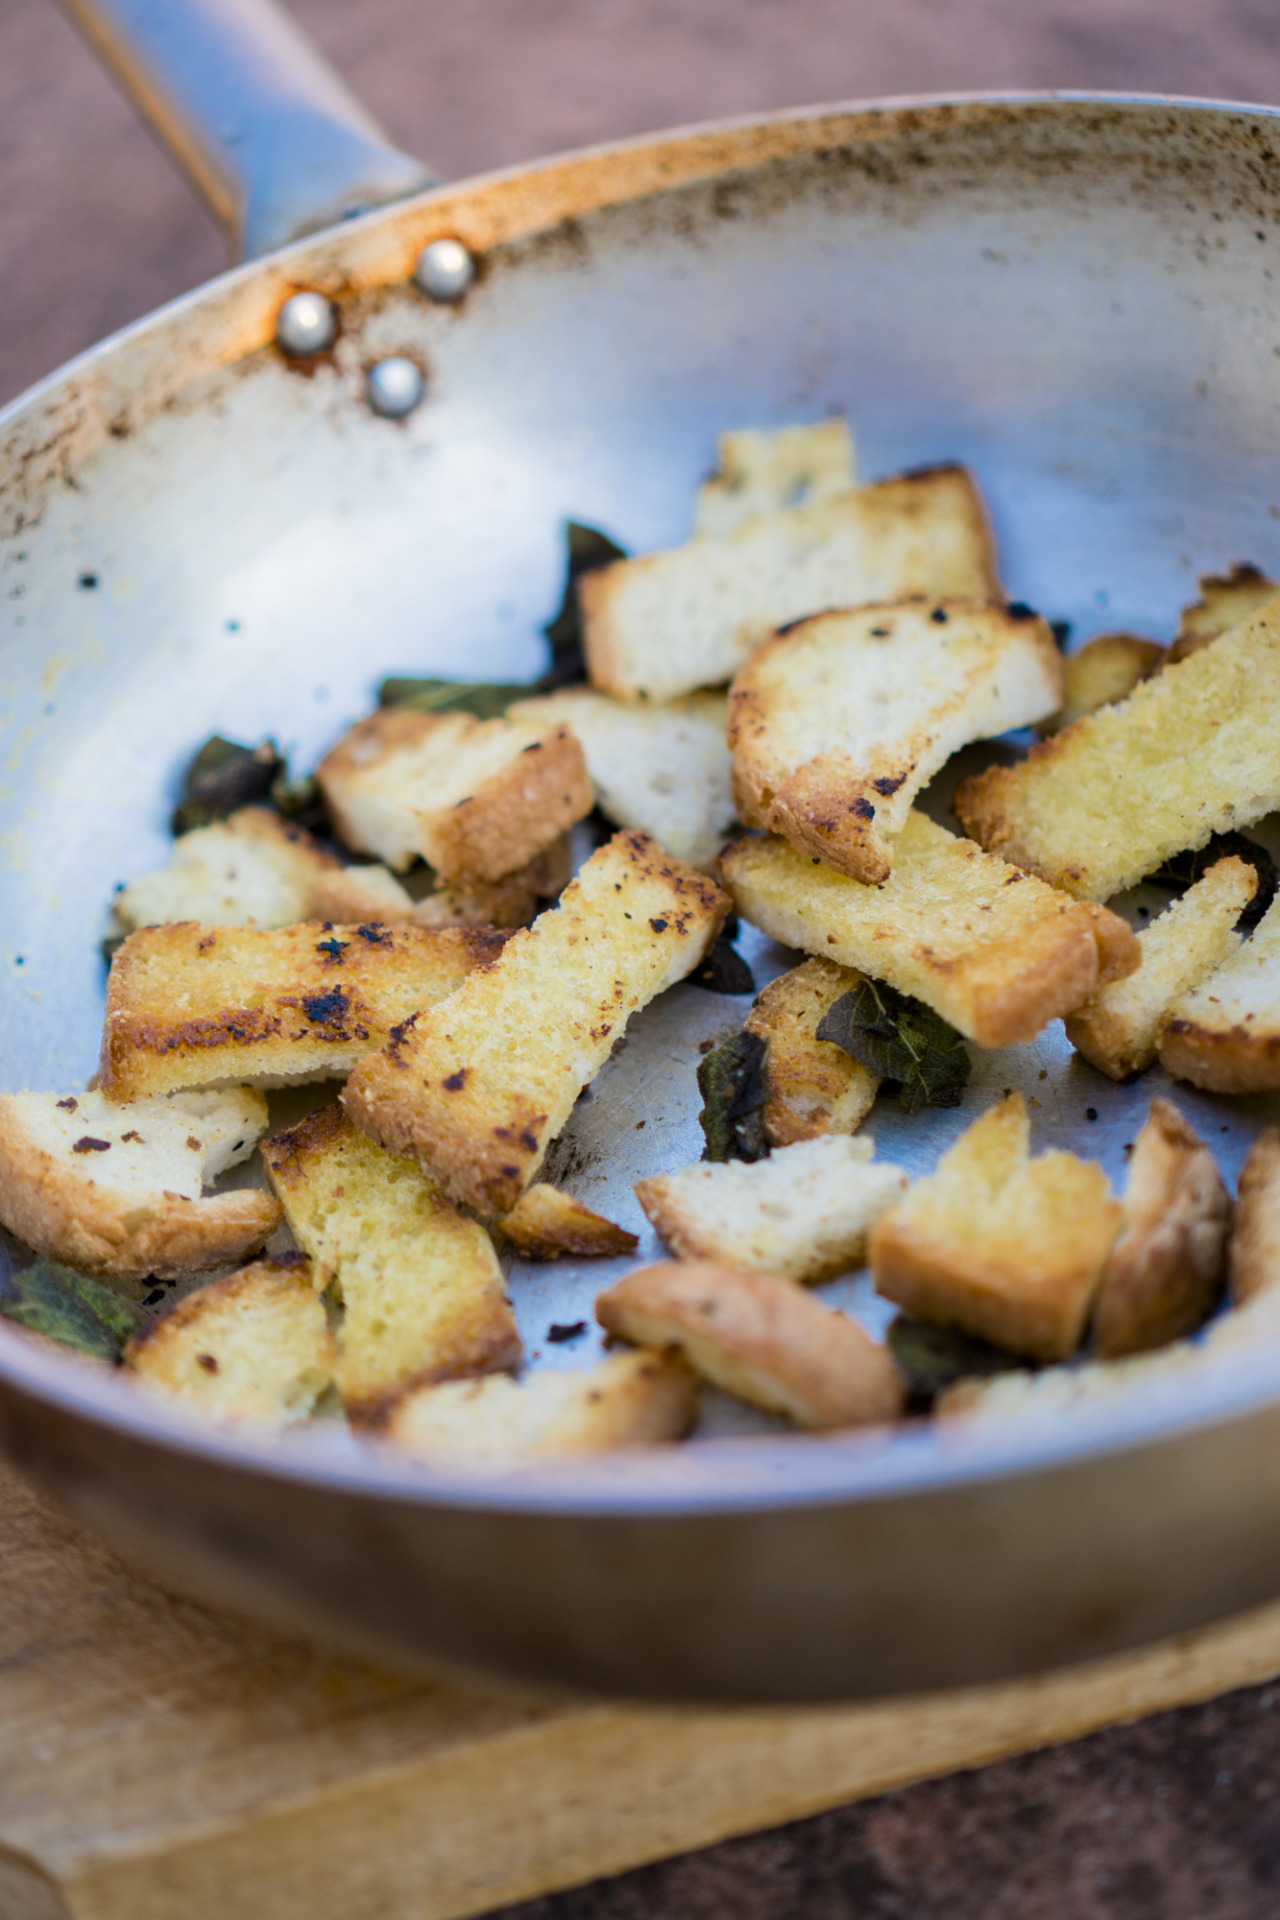 bread salad with pan fried bread with sage and garlic